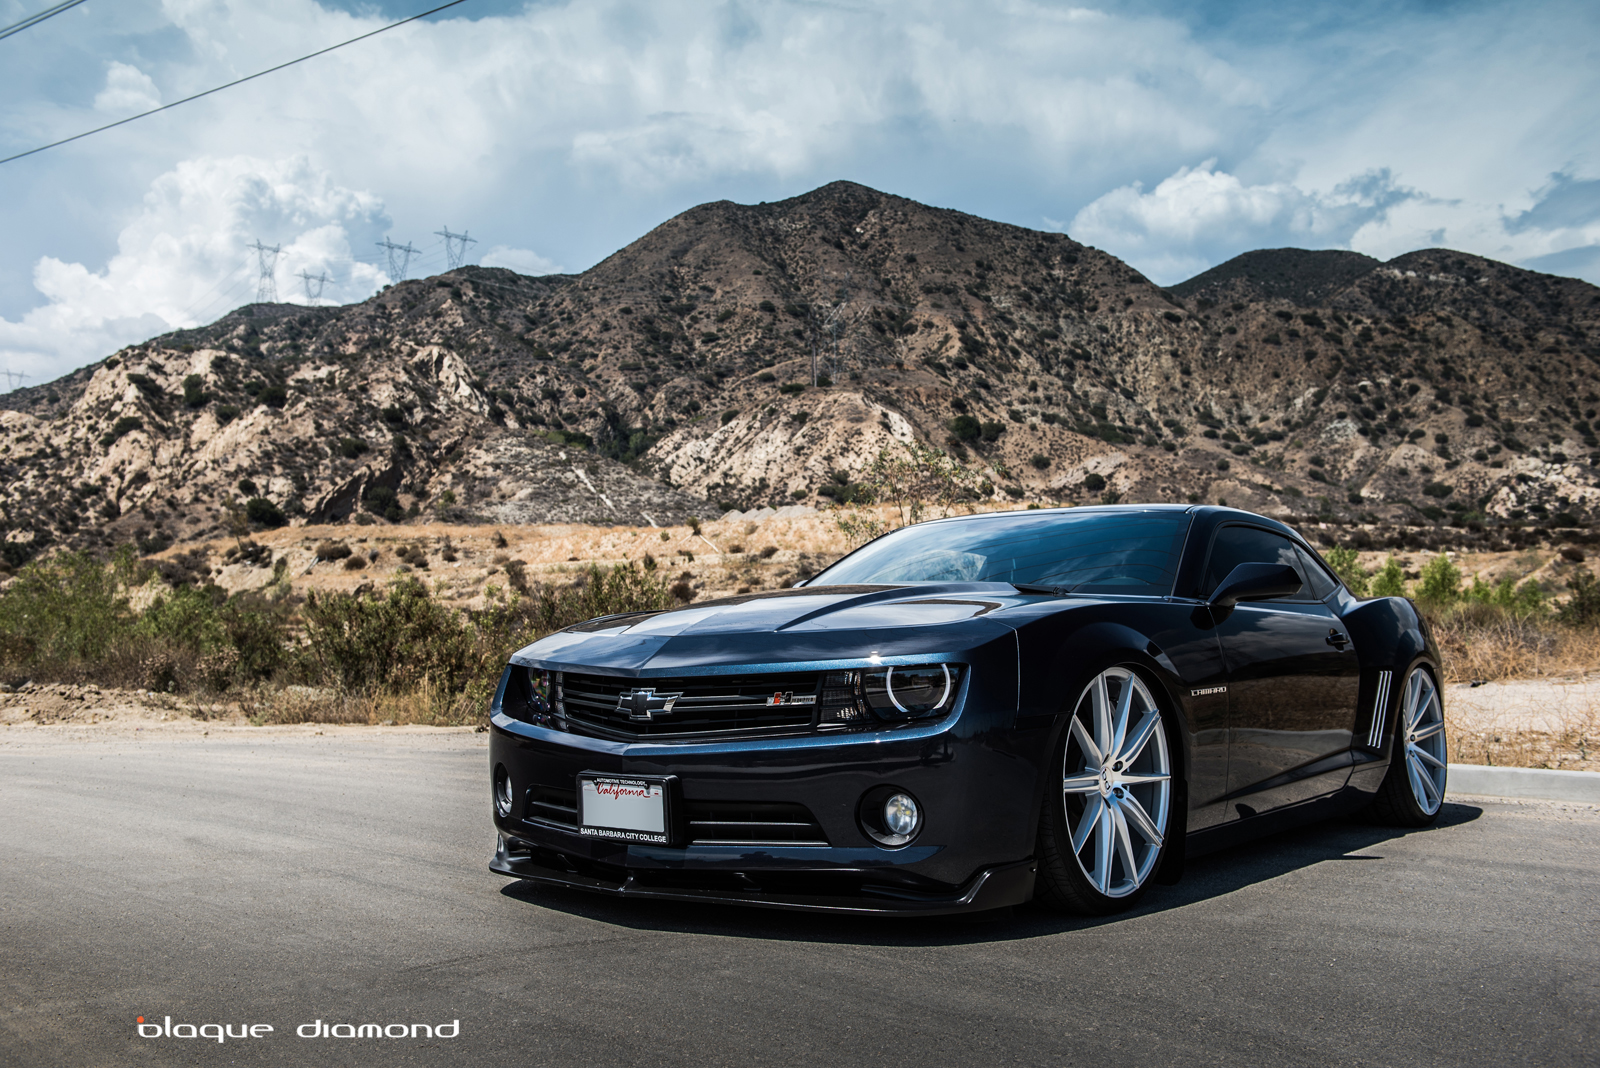 2015 chevy camaro fitted with 22 inch bd 9 s in silver blog. Black Bedroom Furniture Sets. Home Design Ideas